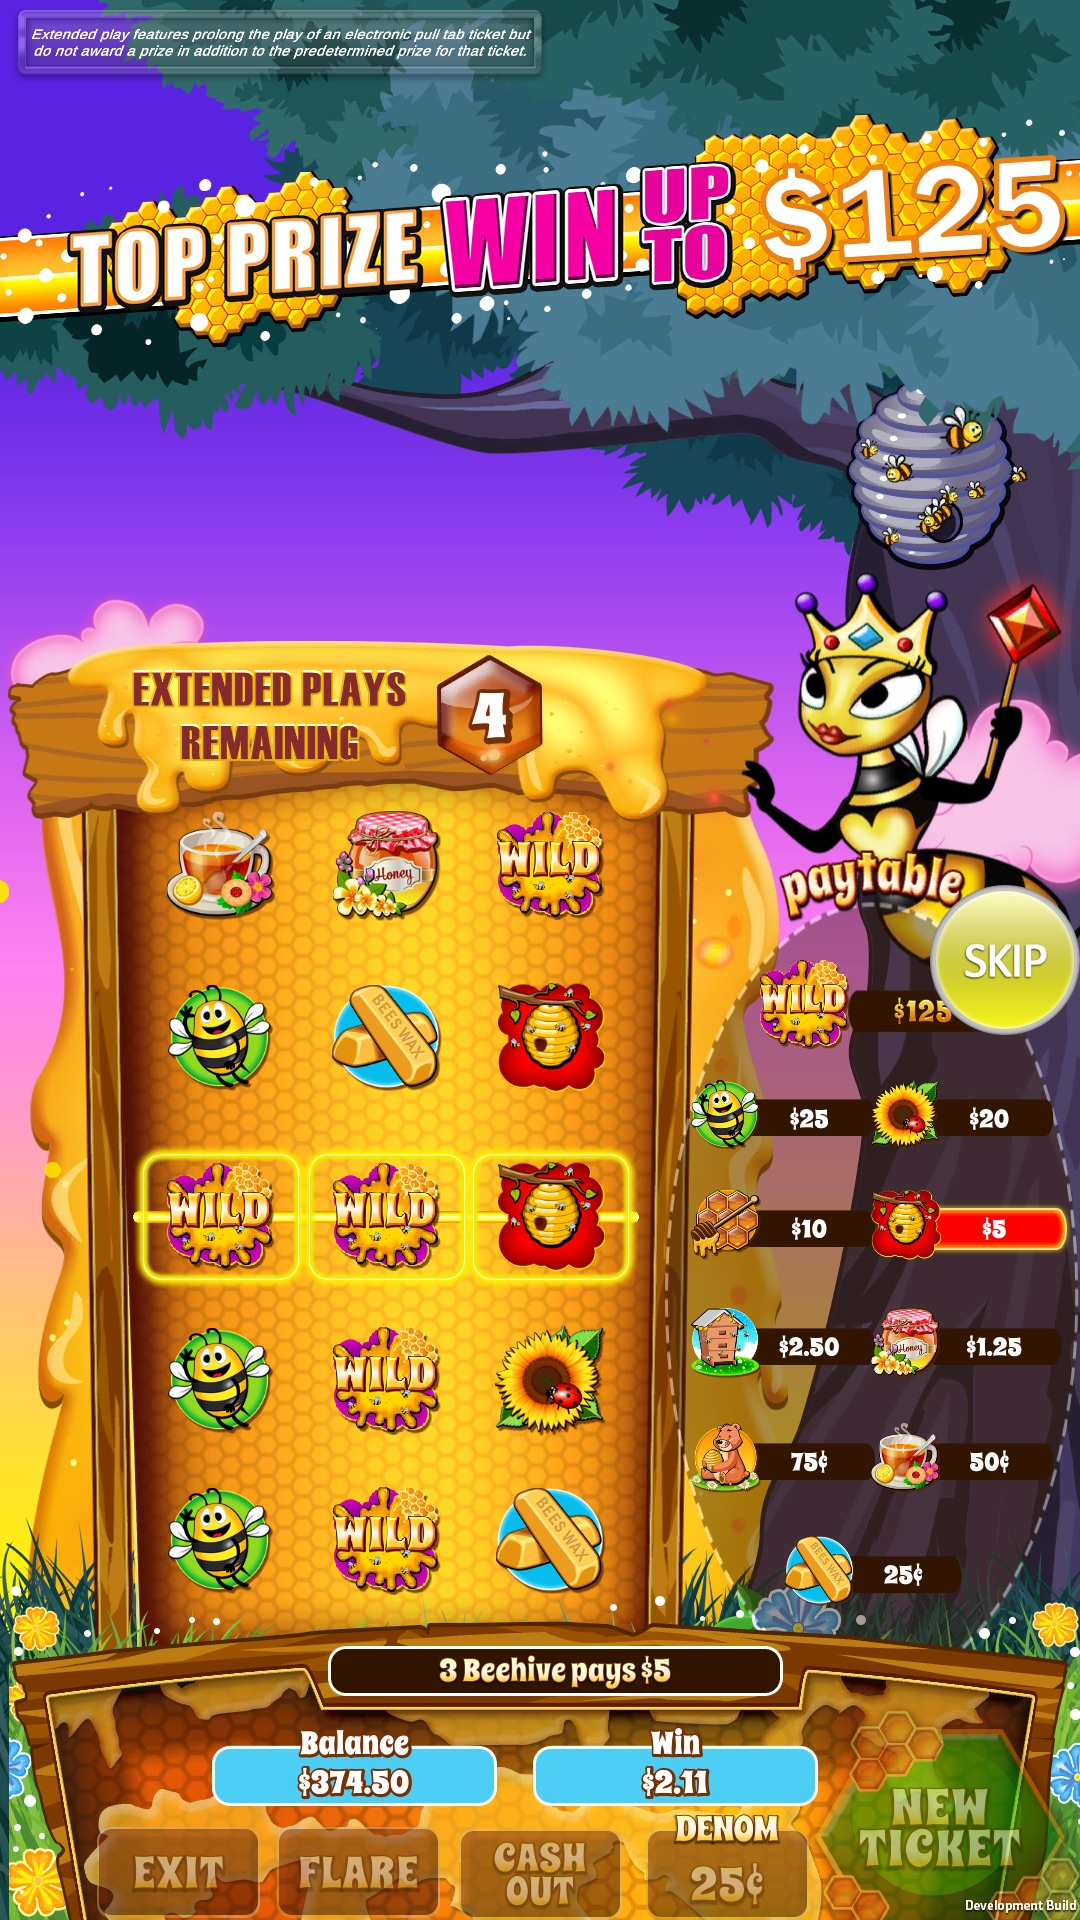 Honeycomb-pull-tab-game-screen-shot-Free-Play